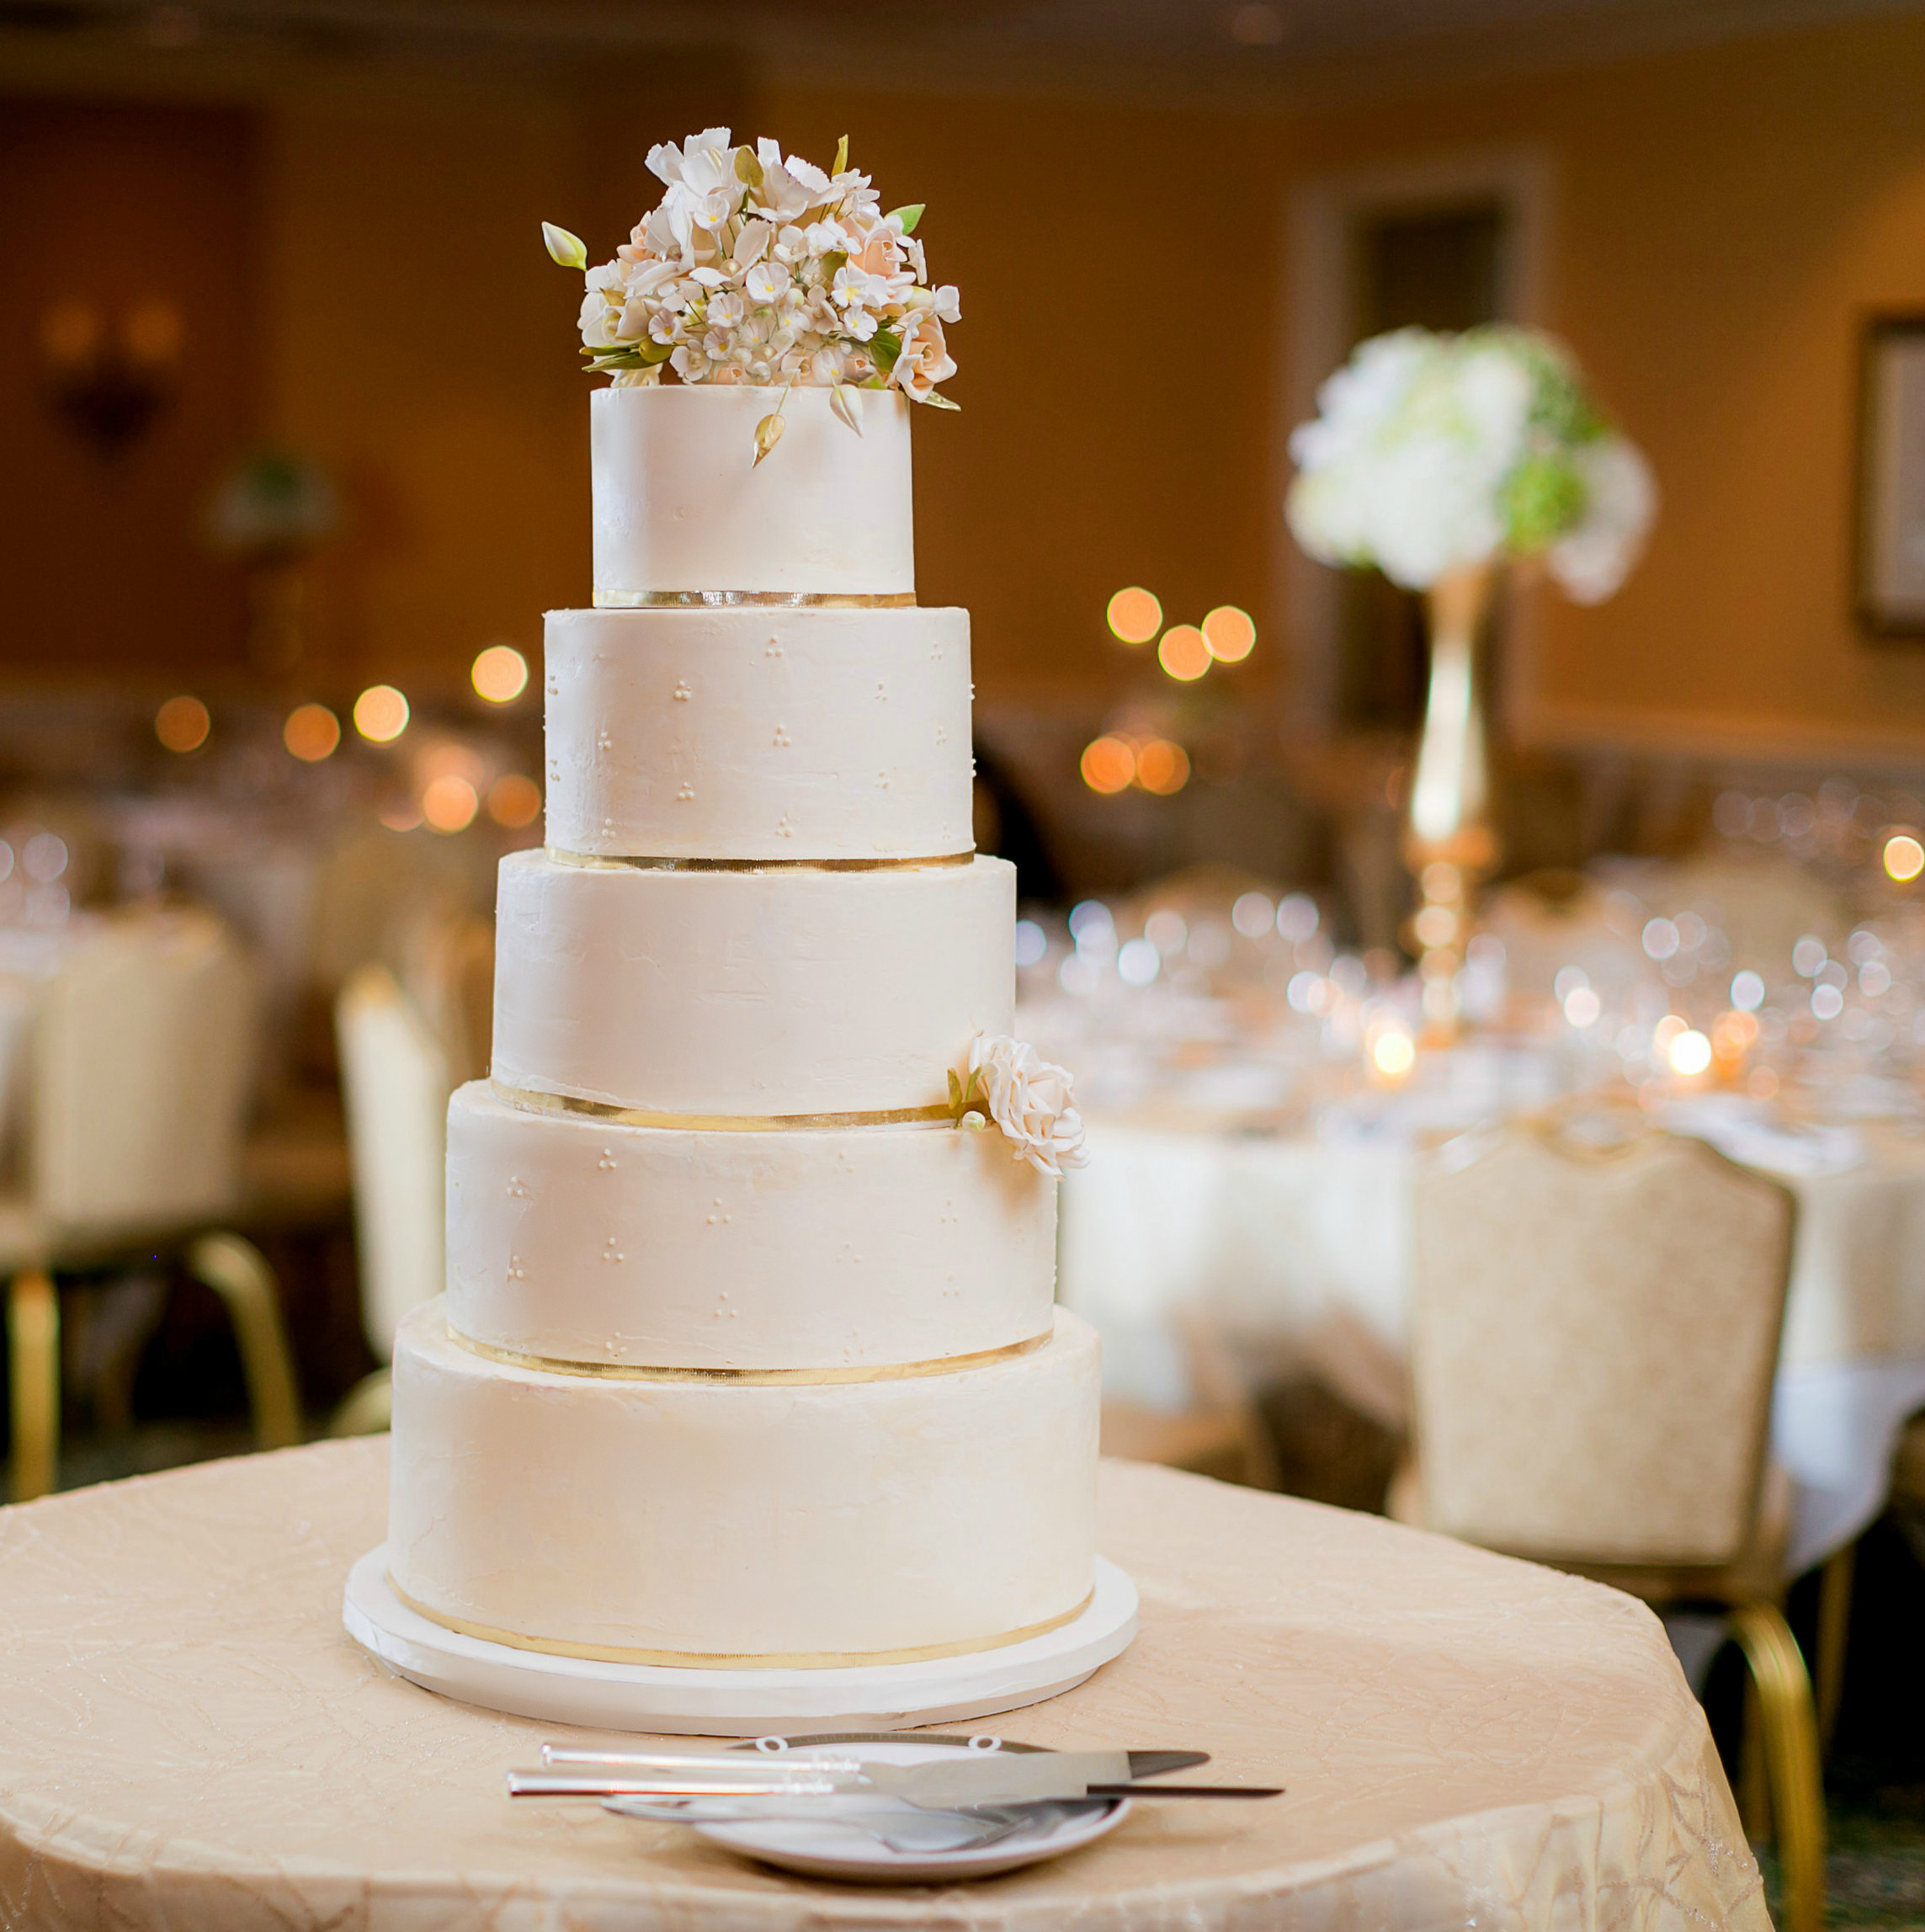 Amy Hockberg Wedding Cake; pro photo edit.jpg